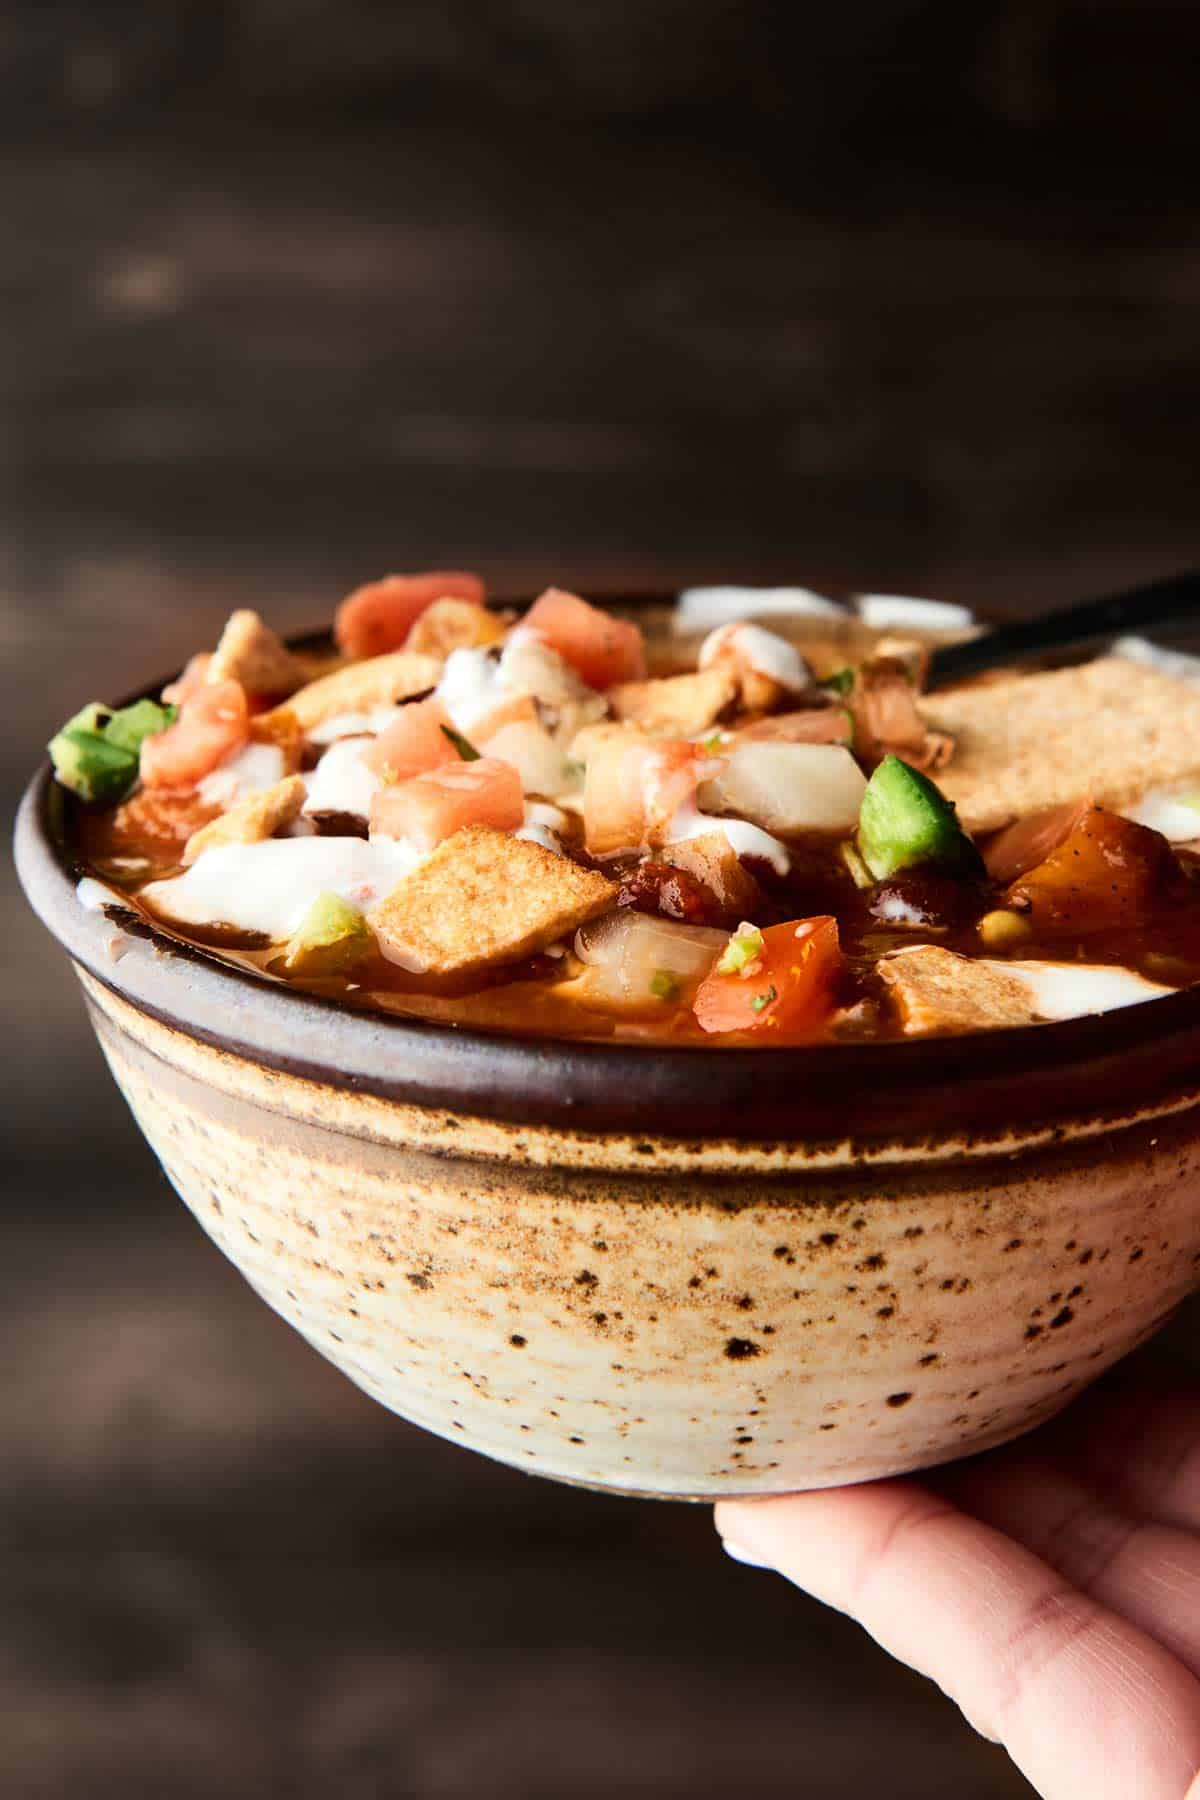 Bowl of vegetarian chili held